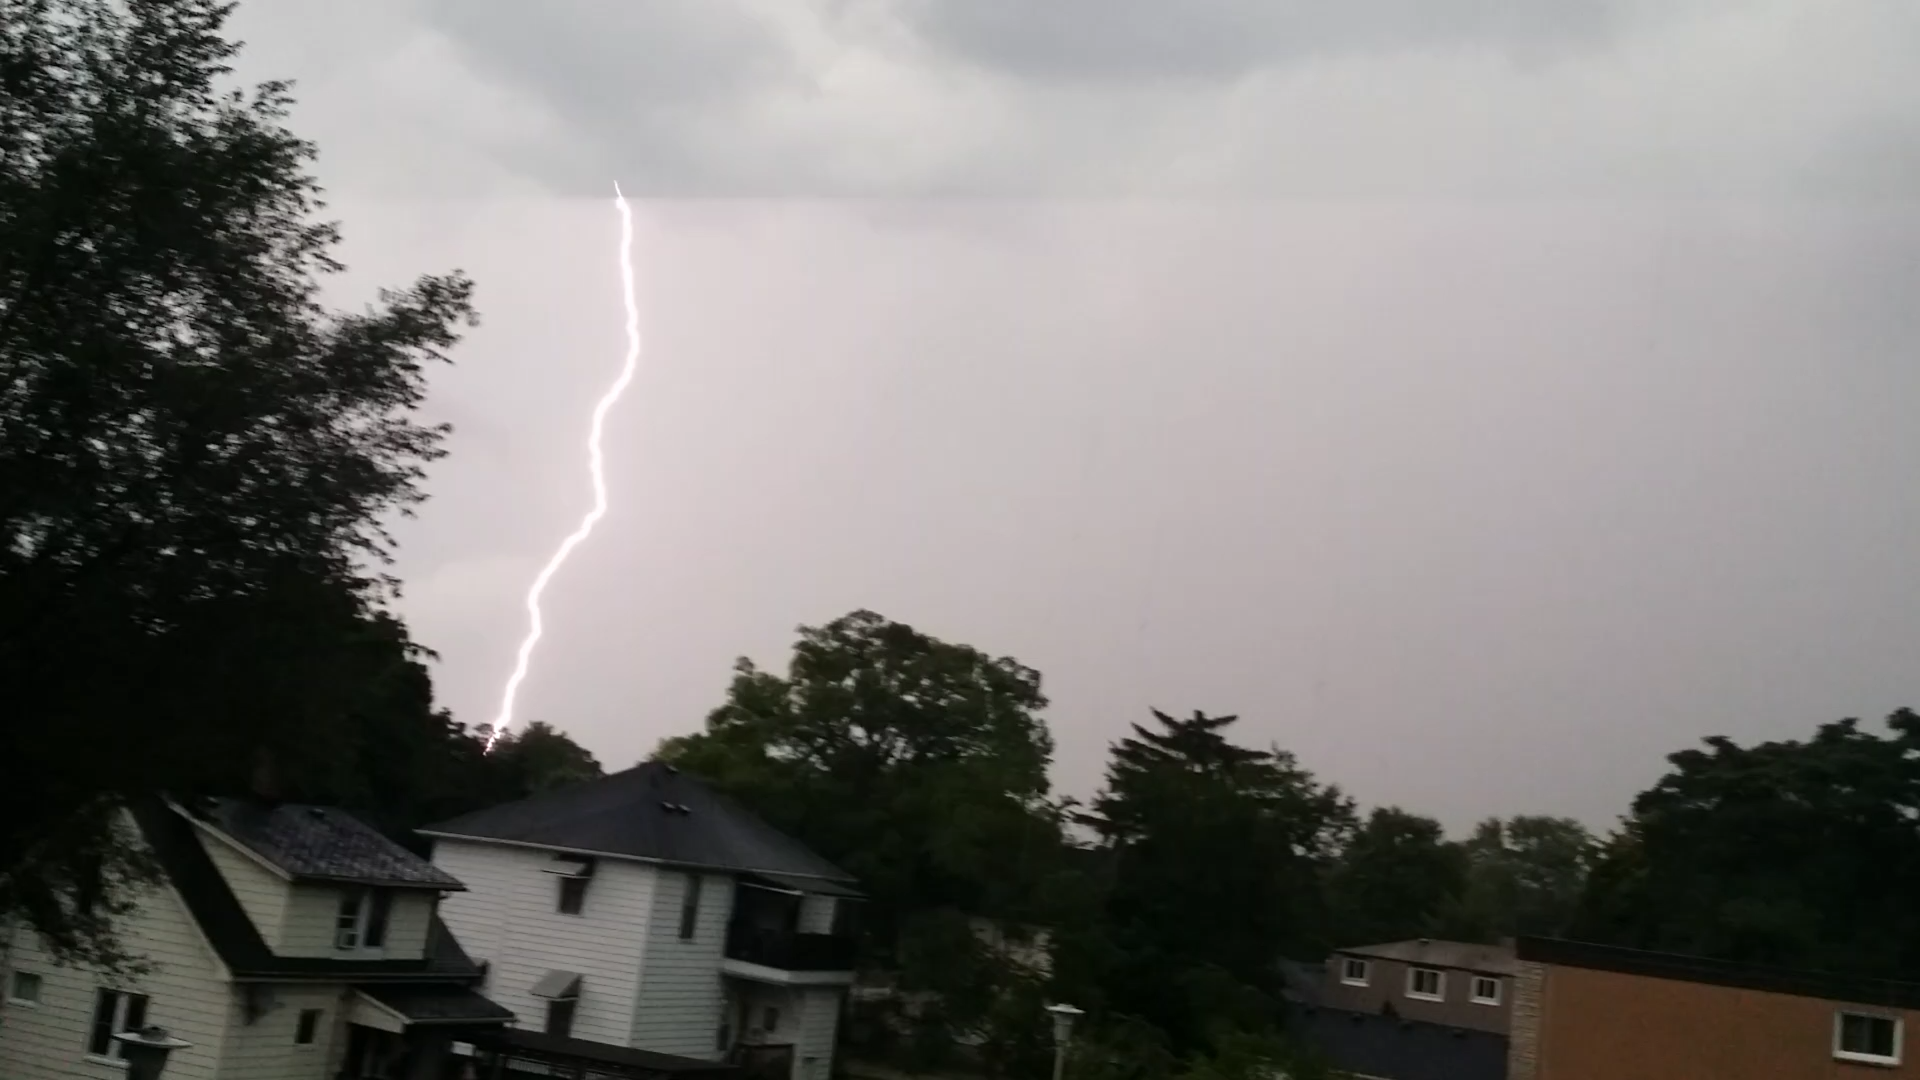 Intense lightning in Sarnia storms Sept 5, 2014 (photo courtesy of Patricia Lacroix)